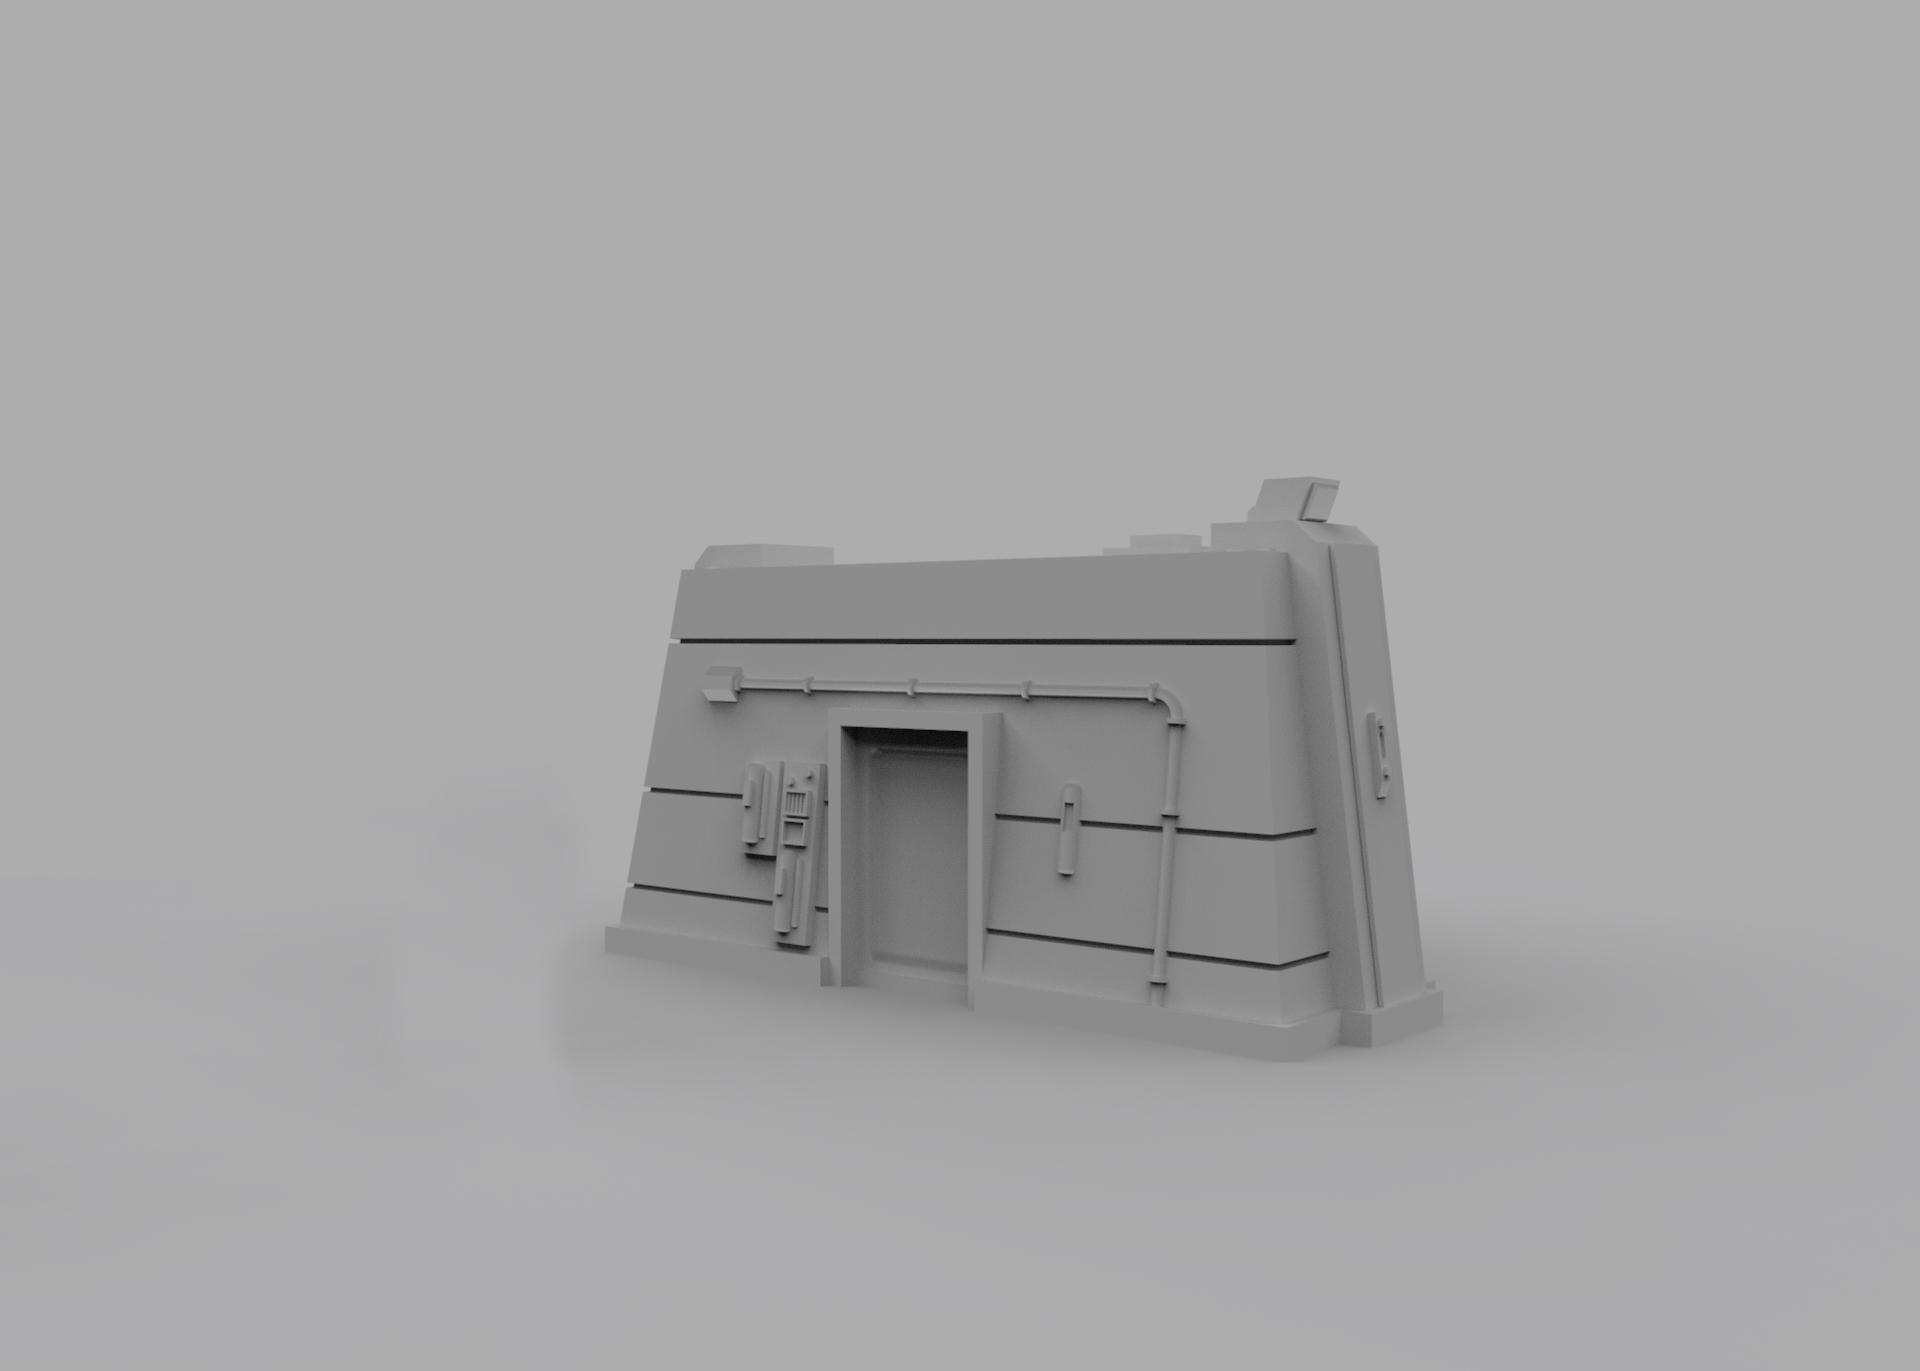 3D Printable Wargaming Terrain at discounted prices now at